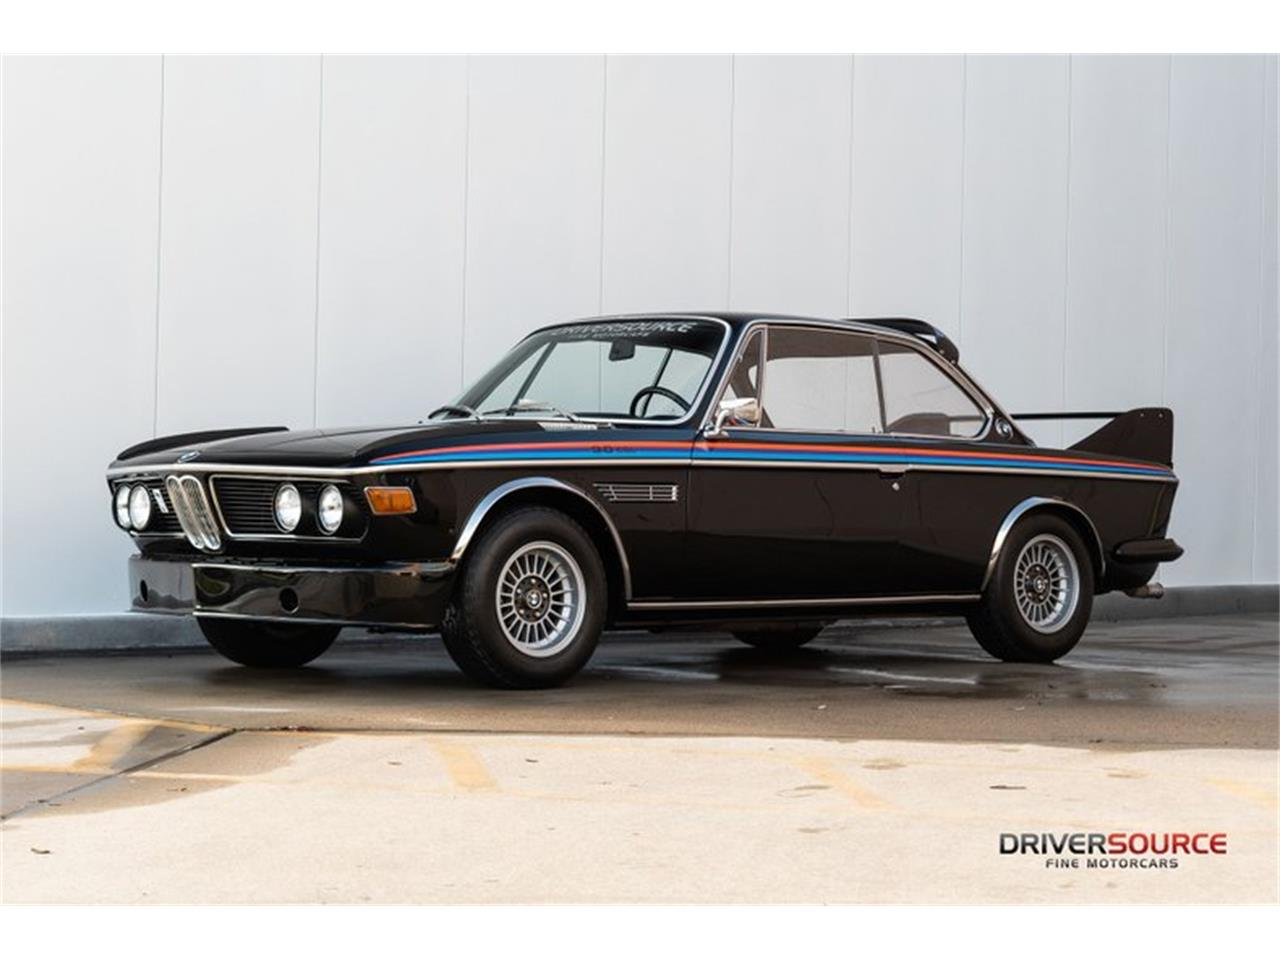 for sale 1972 bmw 3.0csl in houston, texas cars - houston, tx at geebo